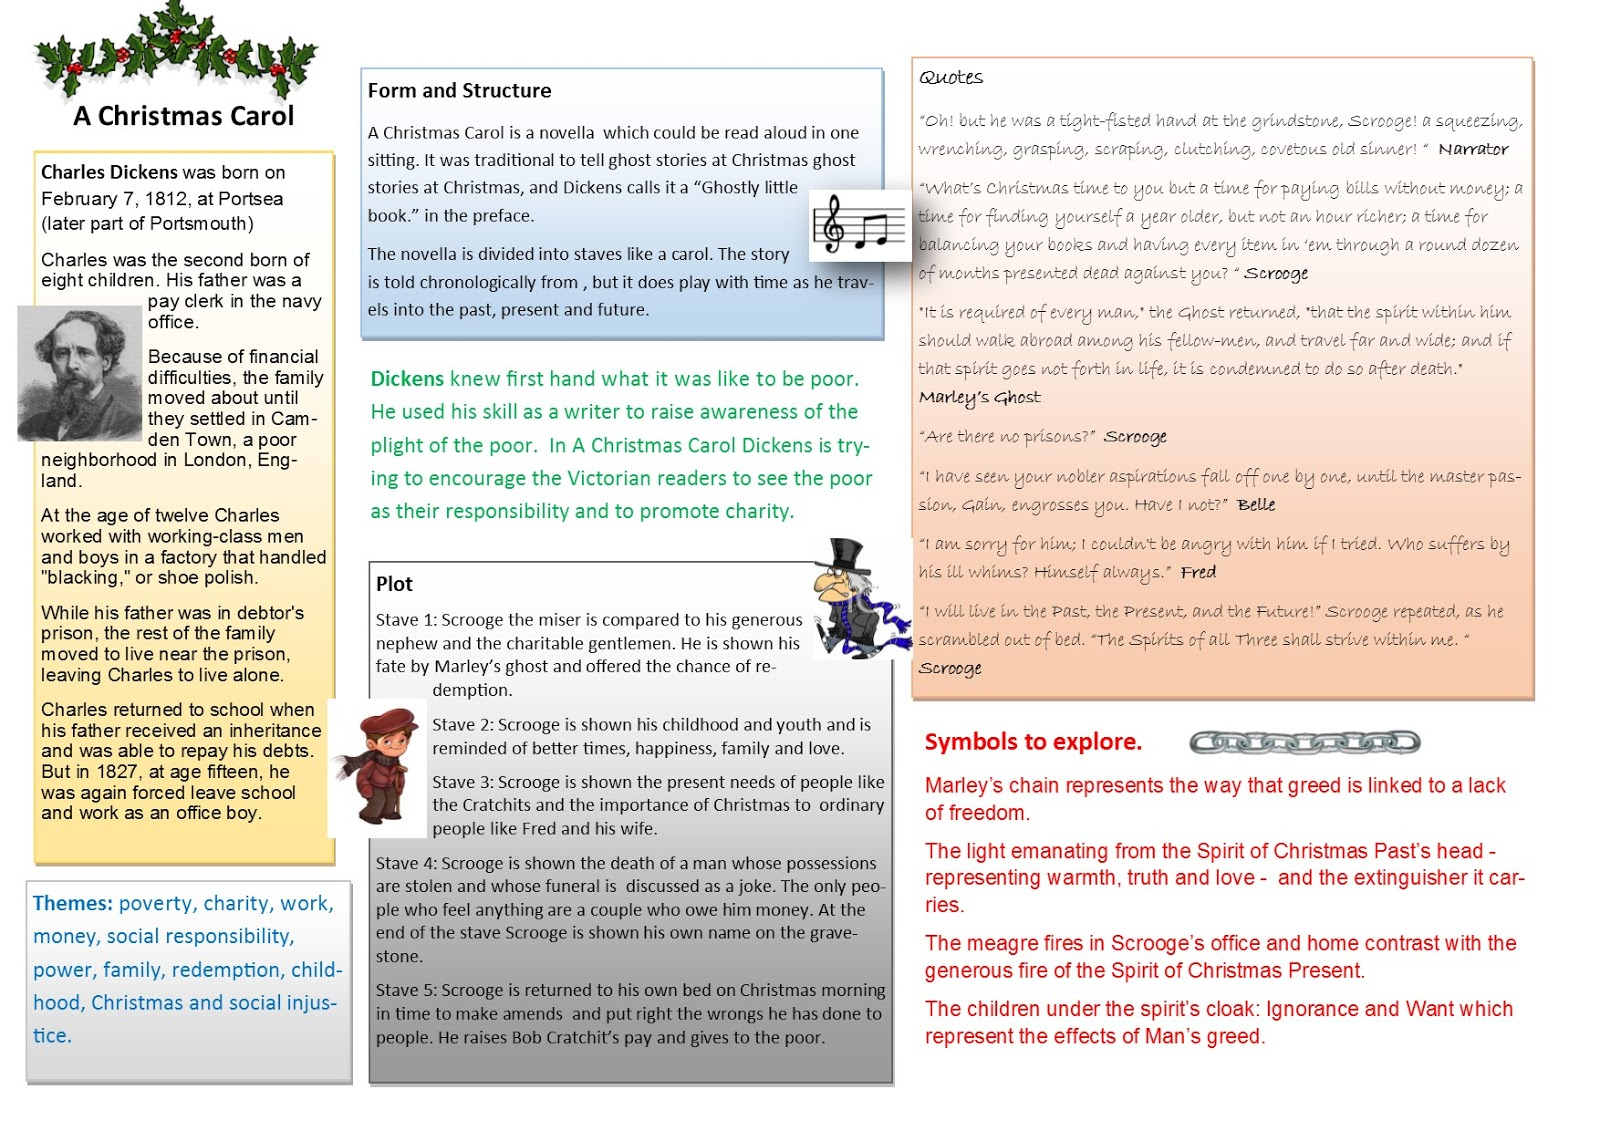 a christmas carol knowledge organiser - A Christmas Carol Full Text